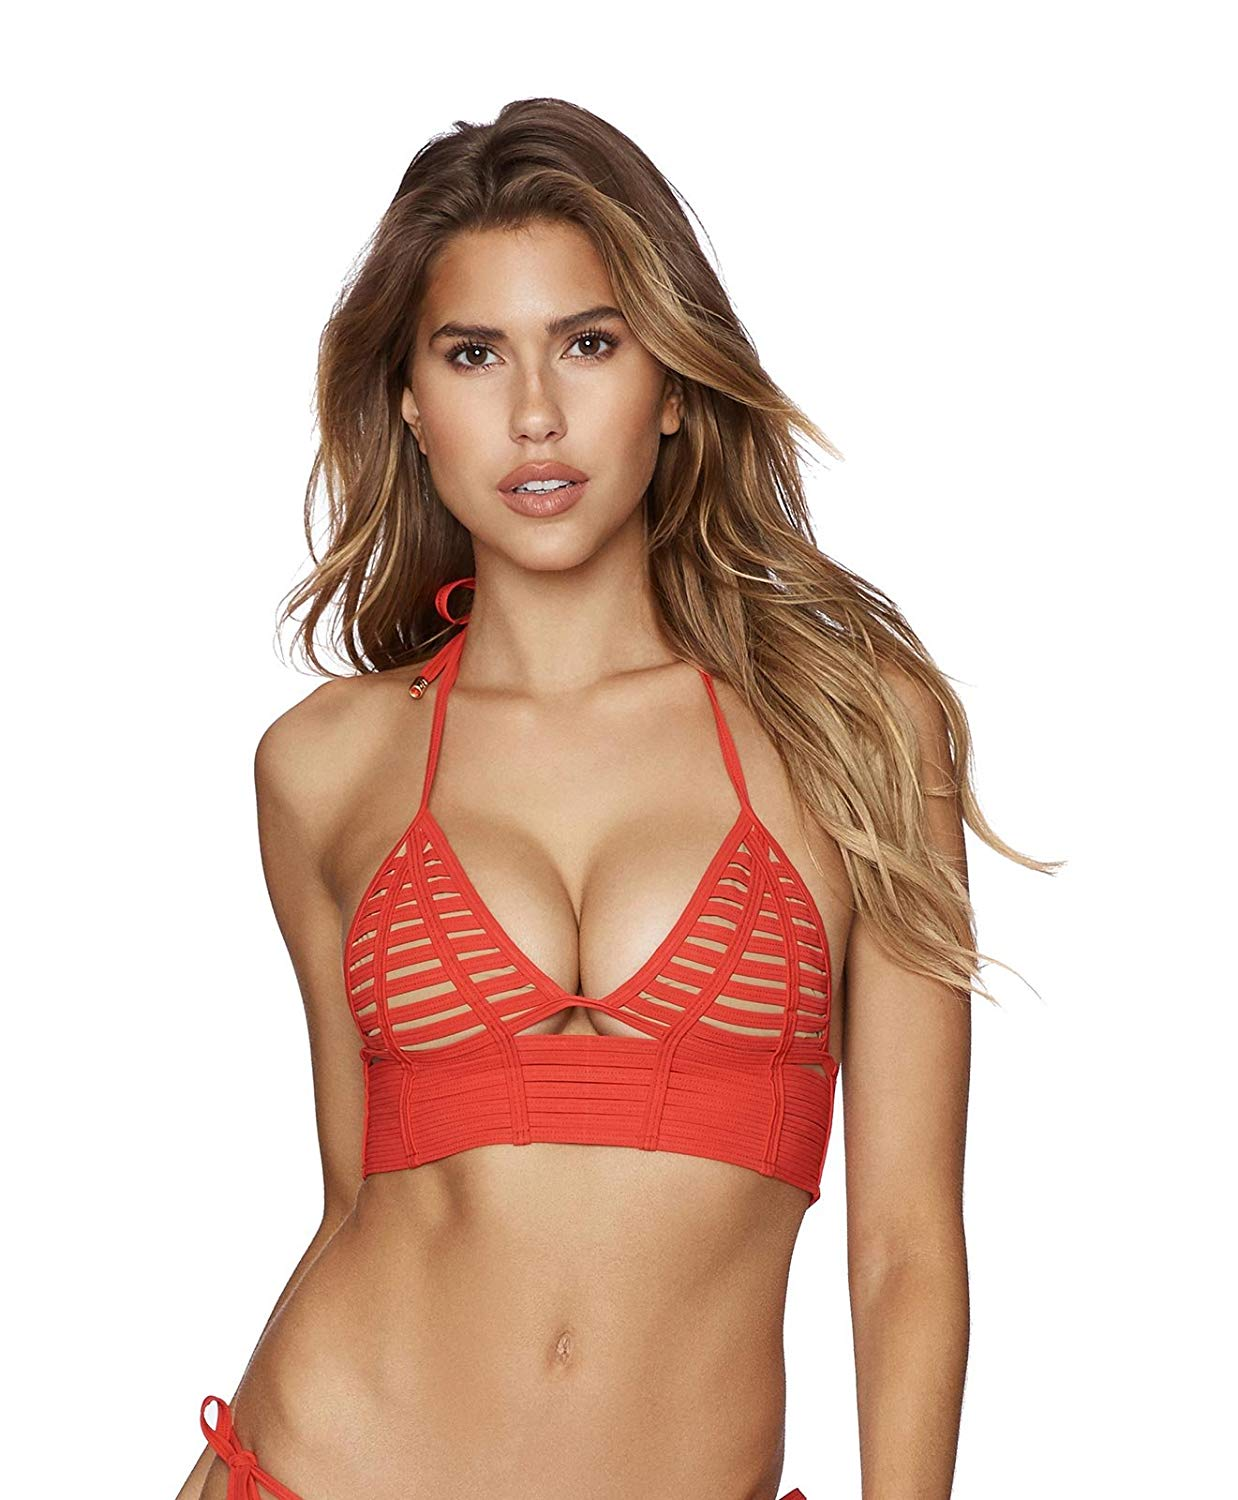 77a203a6b12 Get Quotations · Beach Bunny Swimwear Hard Summer Long Line Bralette  Triangle Top Bikini Red